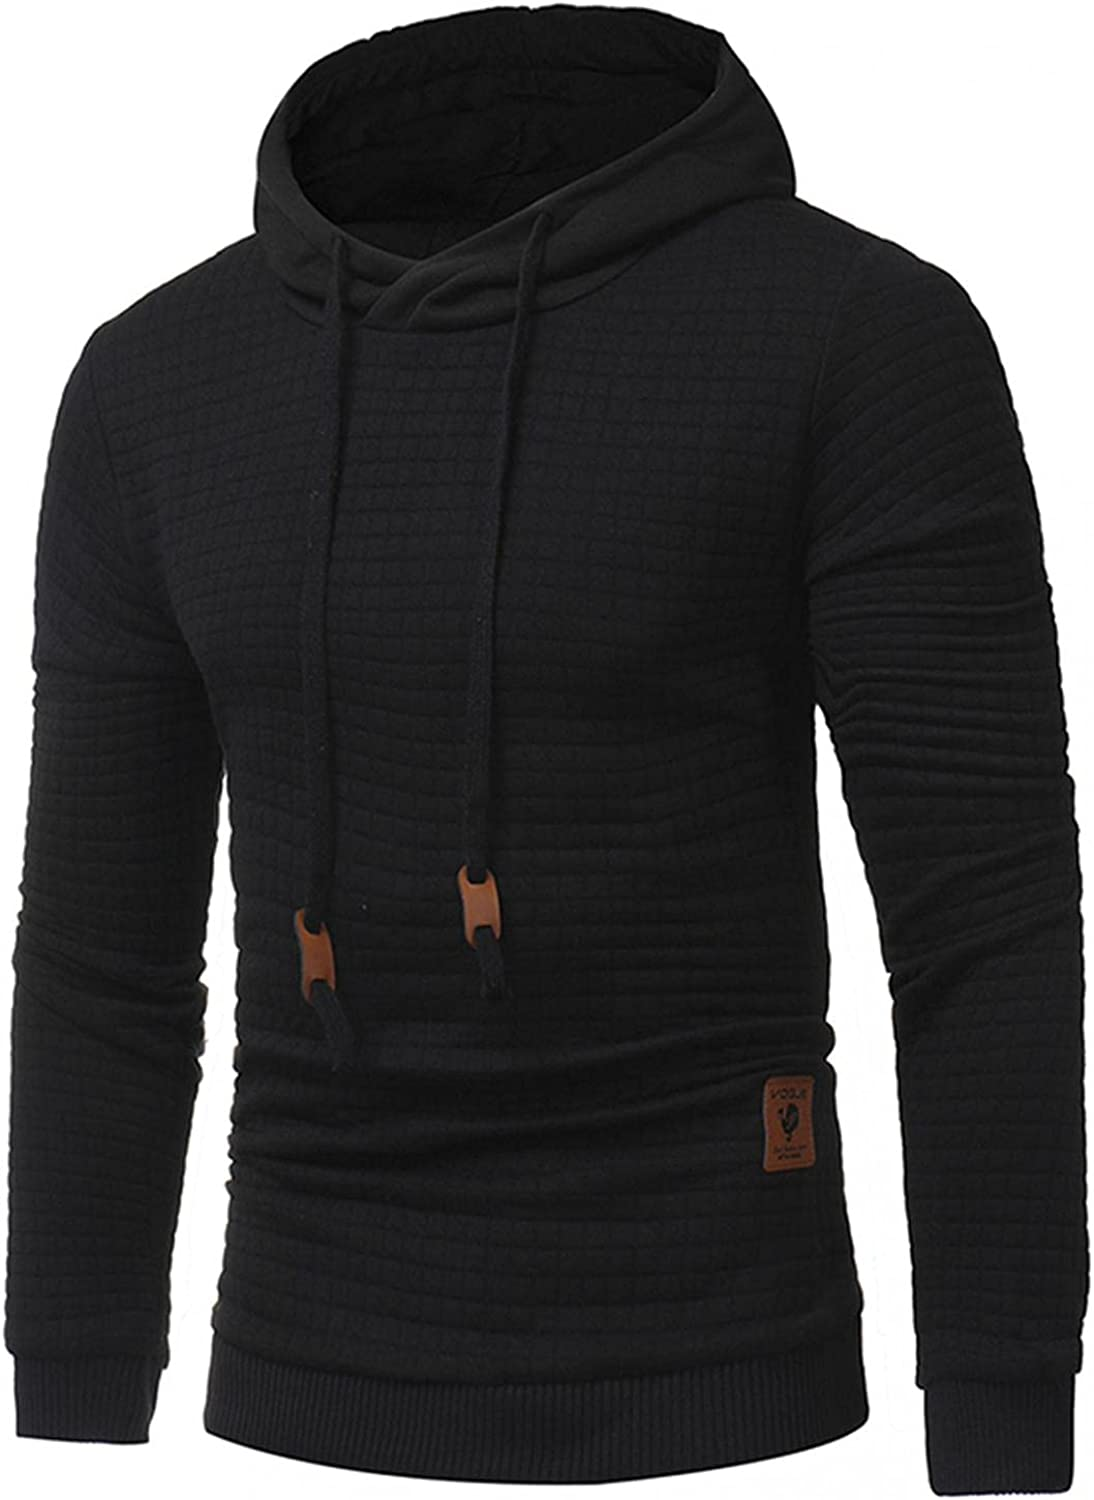 Hoodies for Men Fashion Plaid Quick Dry Pullover Hoodies Tops Winter Long Sleeve Breathable Sweatshirts for Men